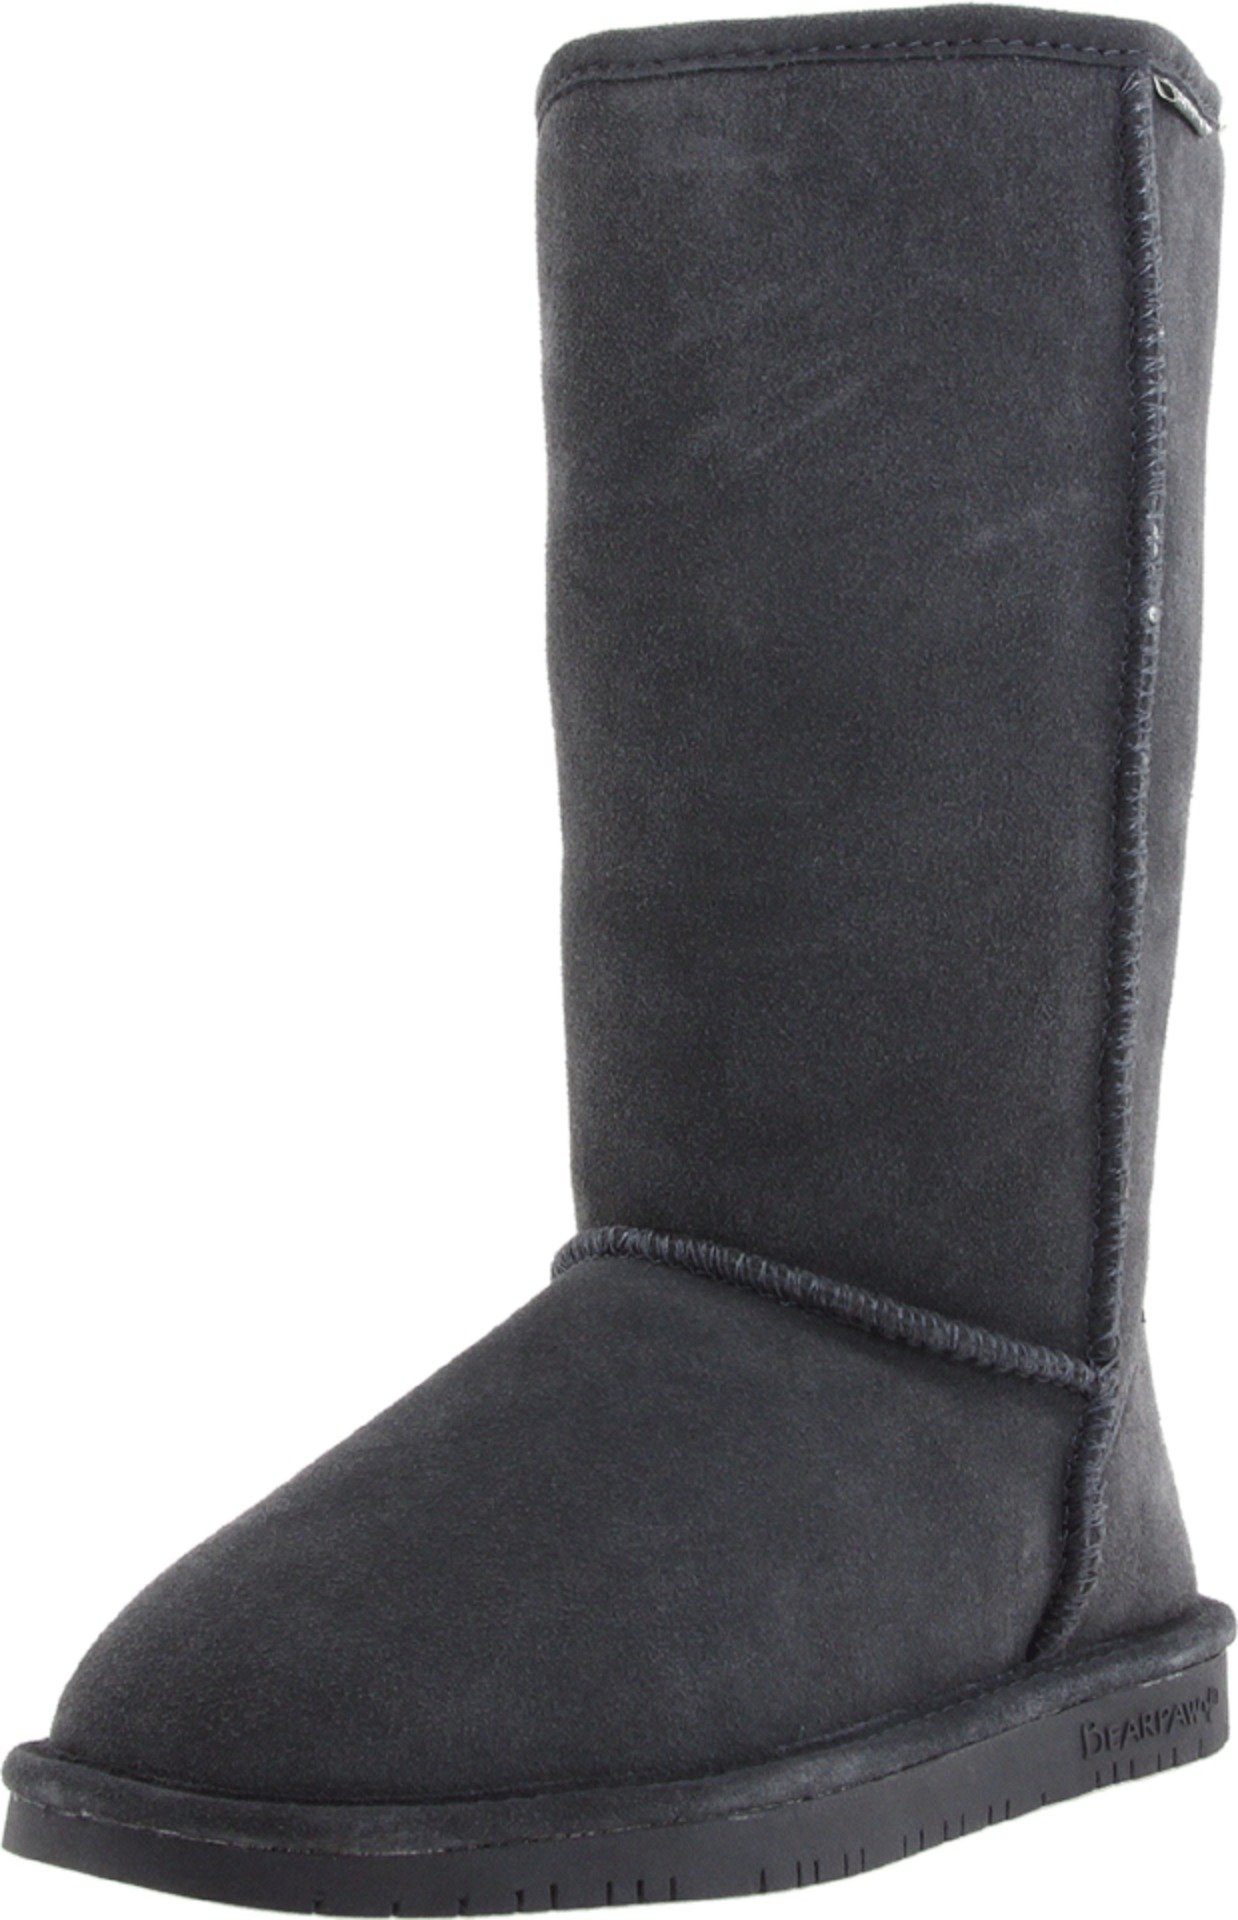 BEARPAW Women's Emma Tall Winter Boot, Charcoal, 10 M US